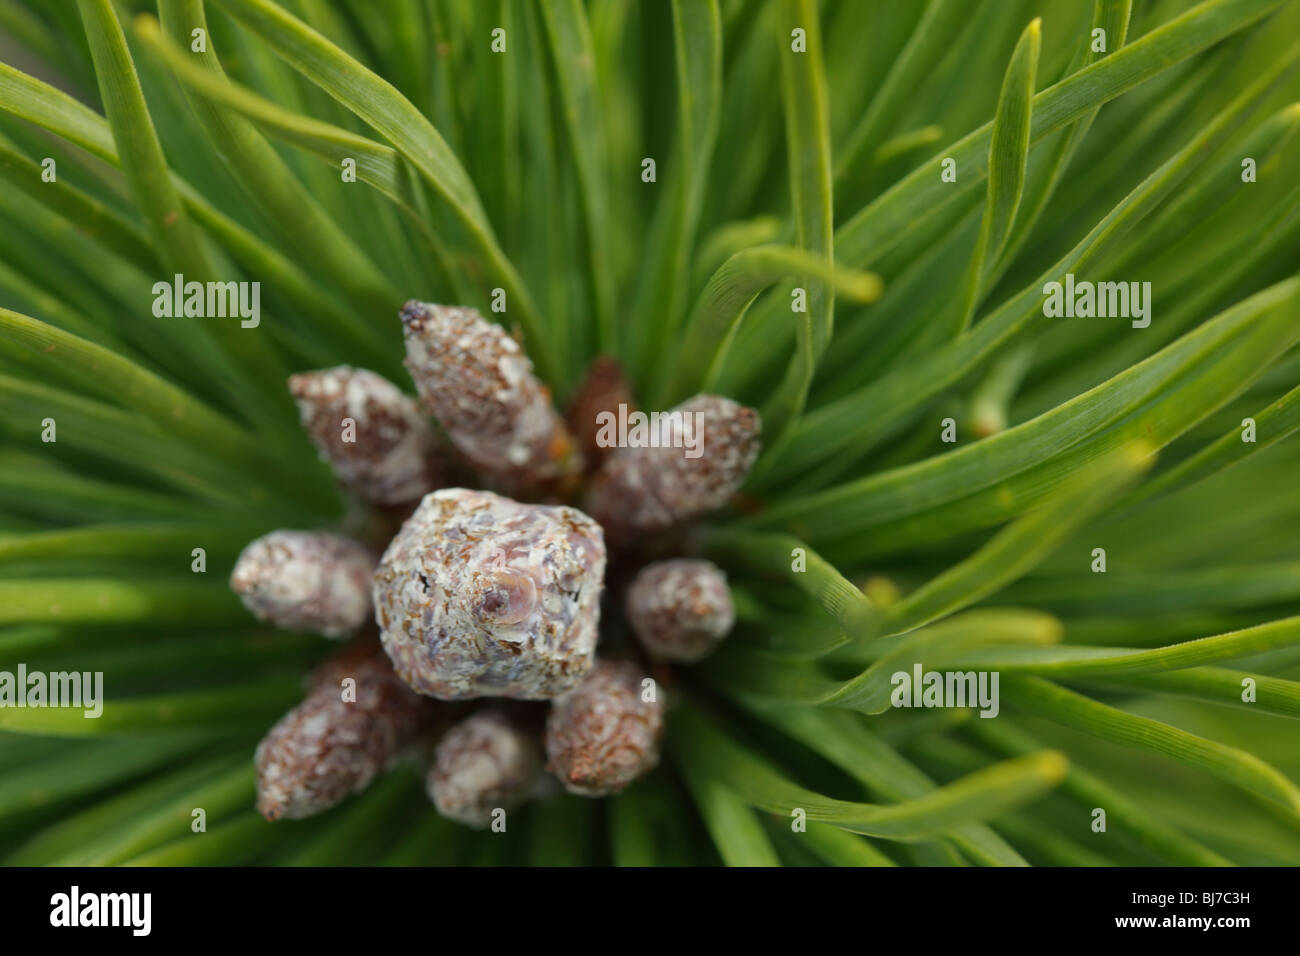 Tip of a pine twig, close-up - Stock Image